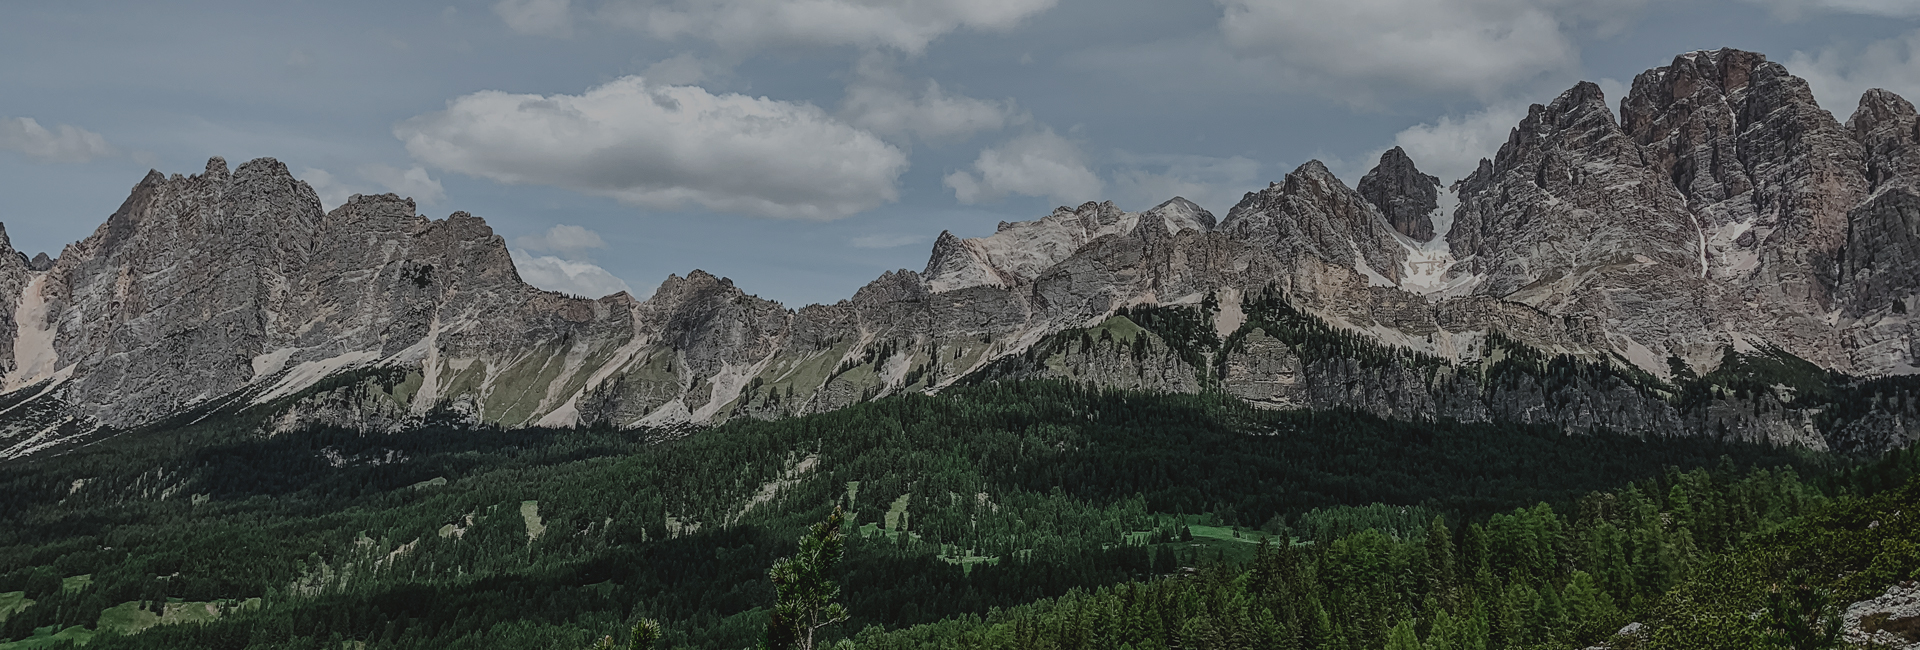 Panoramic view of the mountains of Cortina d'Ampezzo